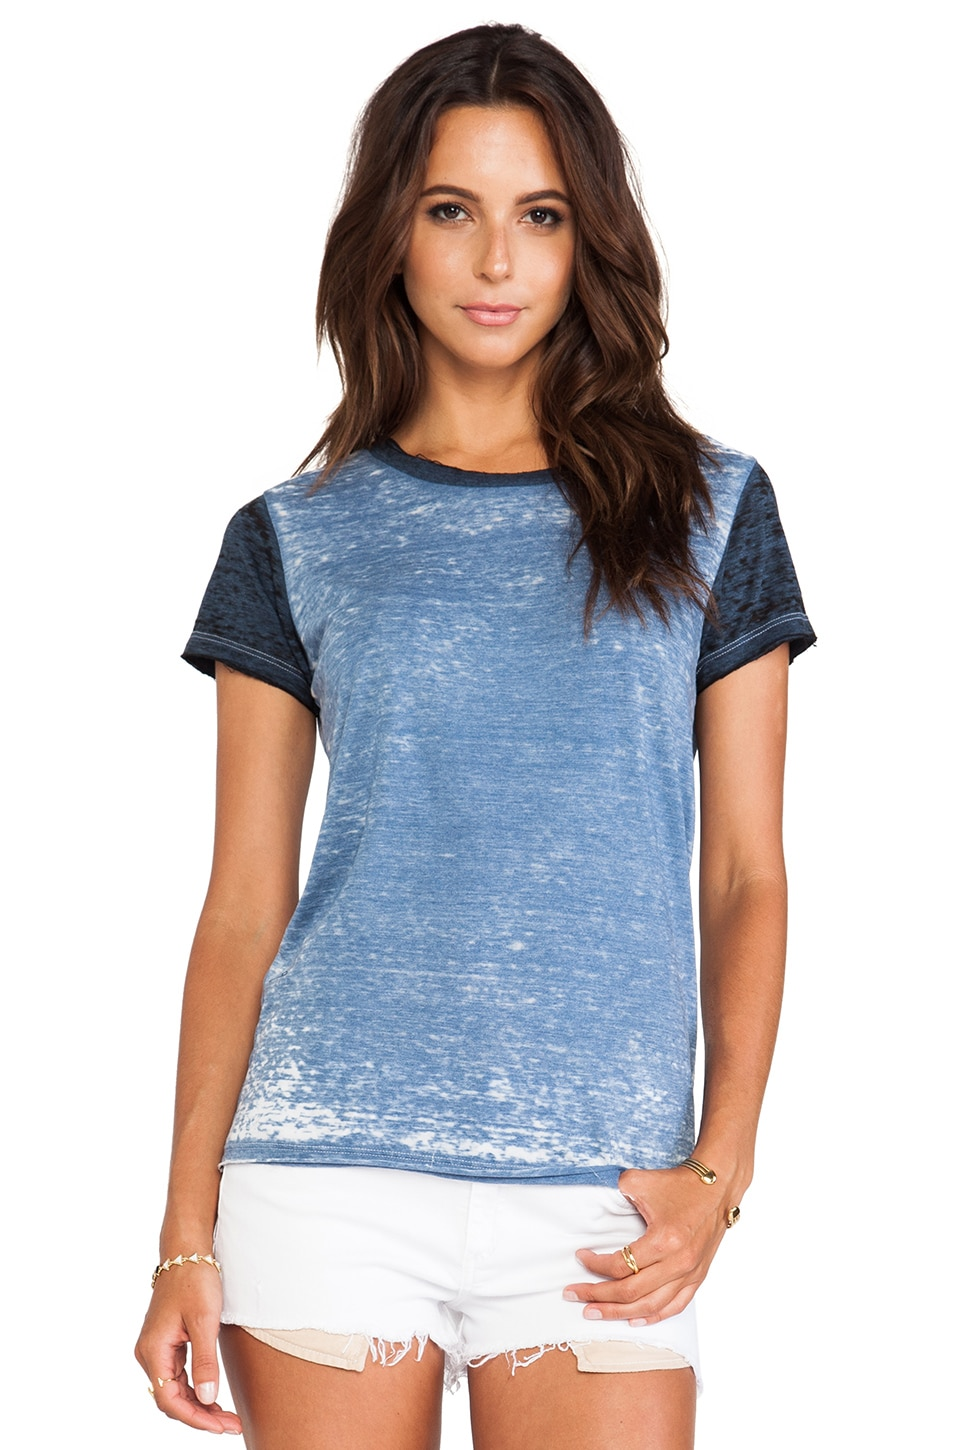 NSF Jagger Tee in Baby Blue